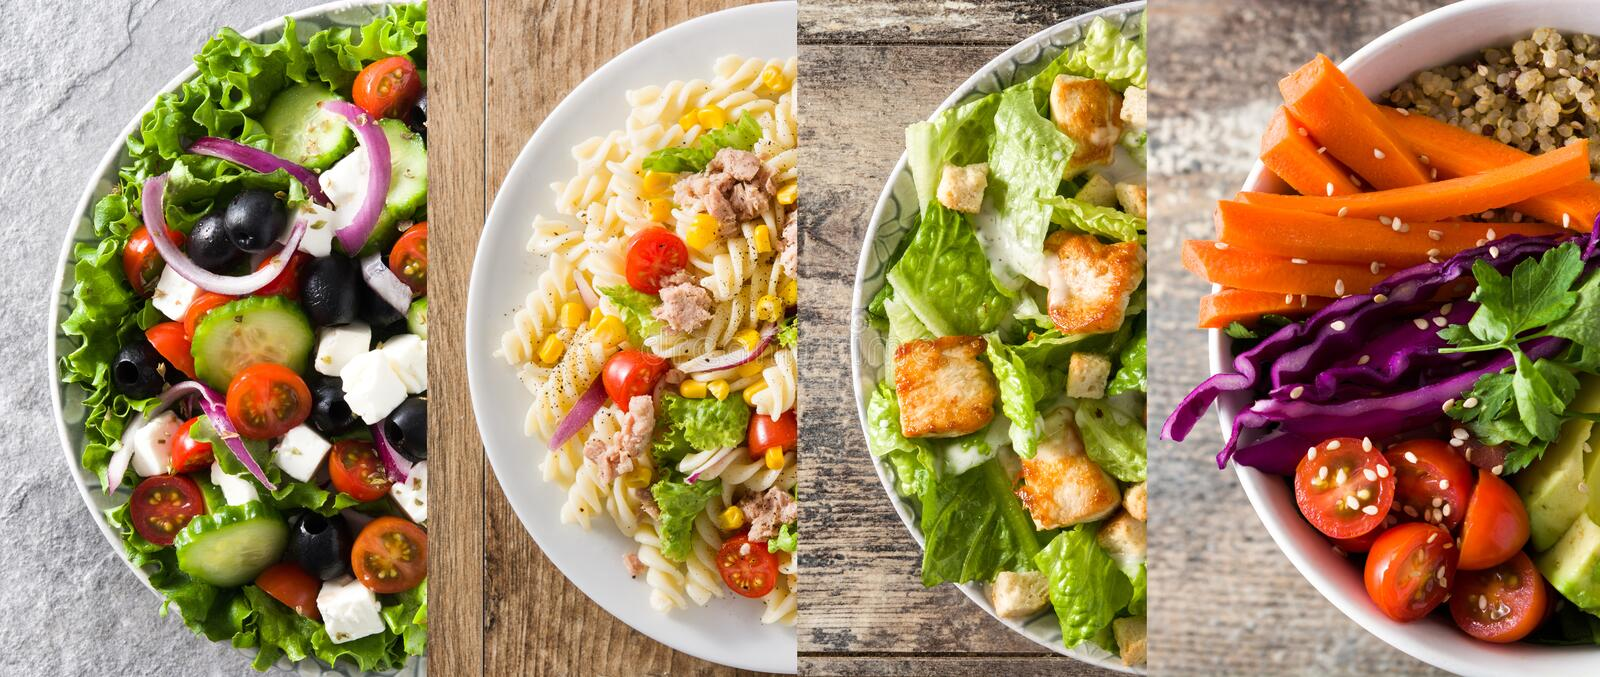 Collage of healthy salad. Greek salad, Pasta salad, Caesar salad and Buddha bowl stock images